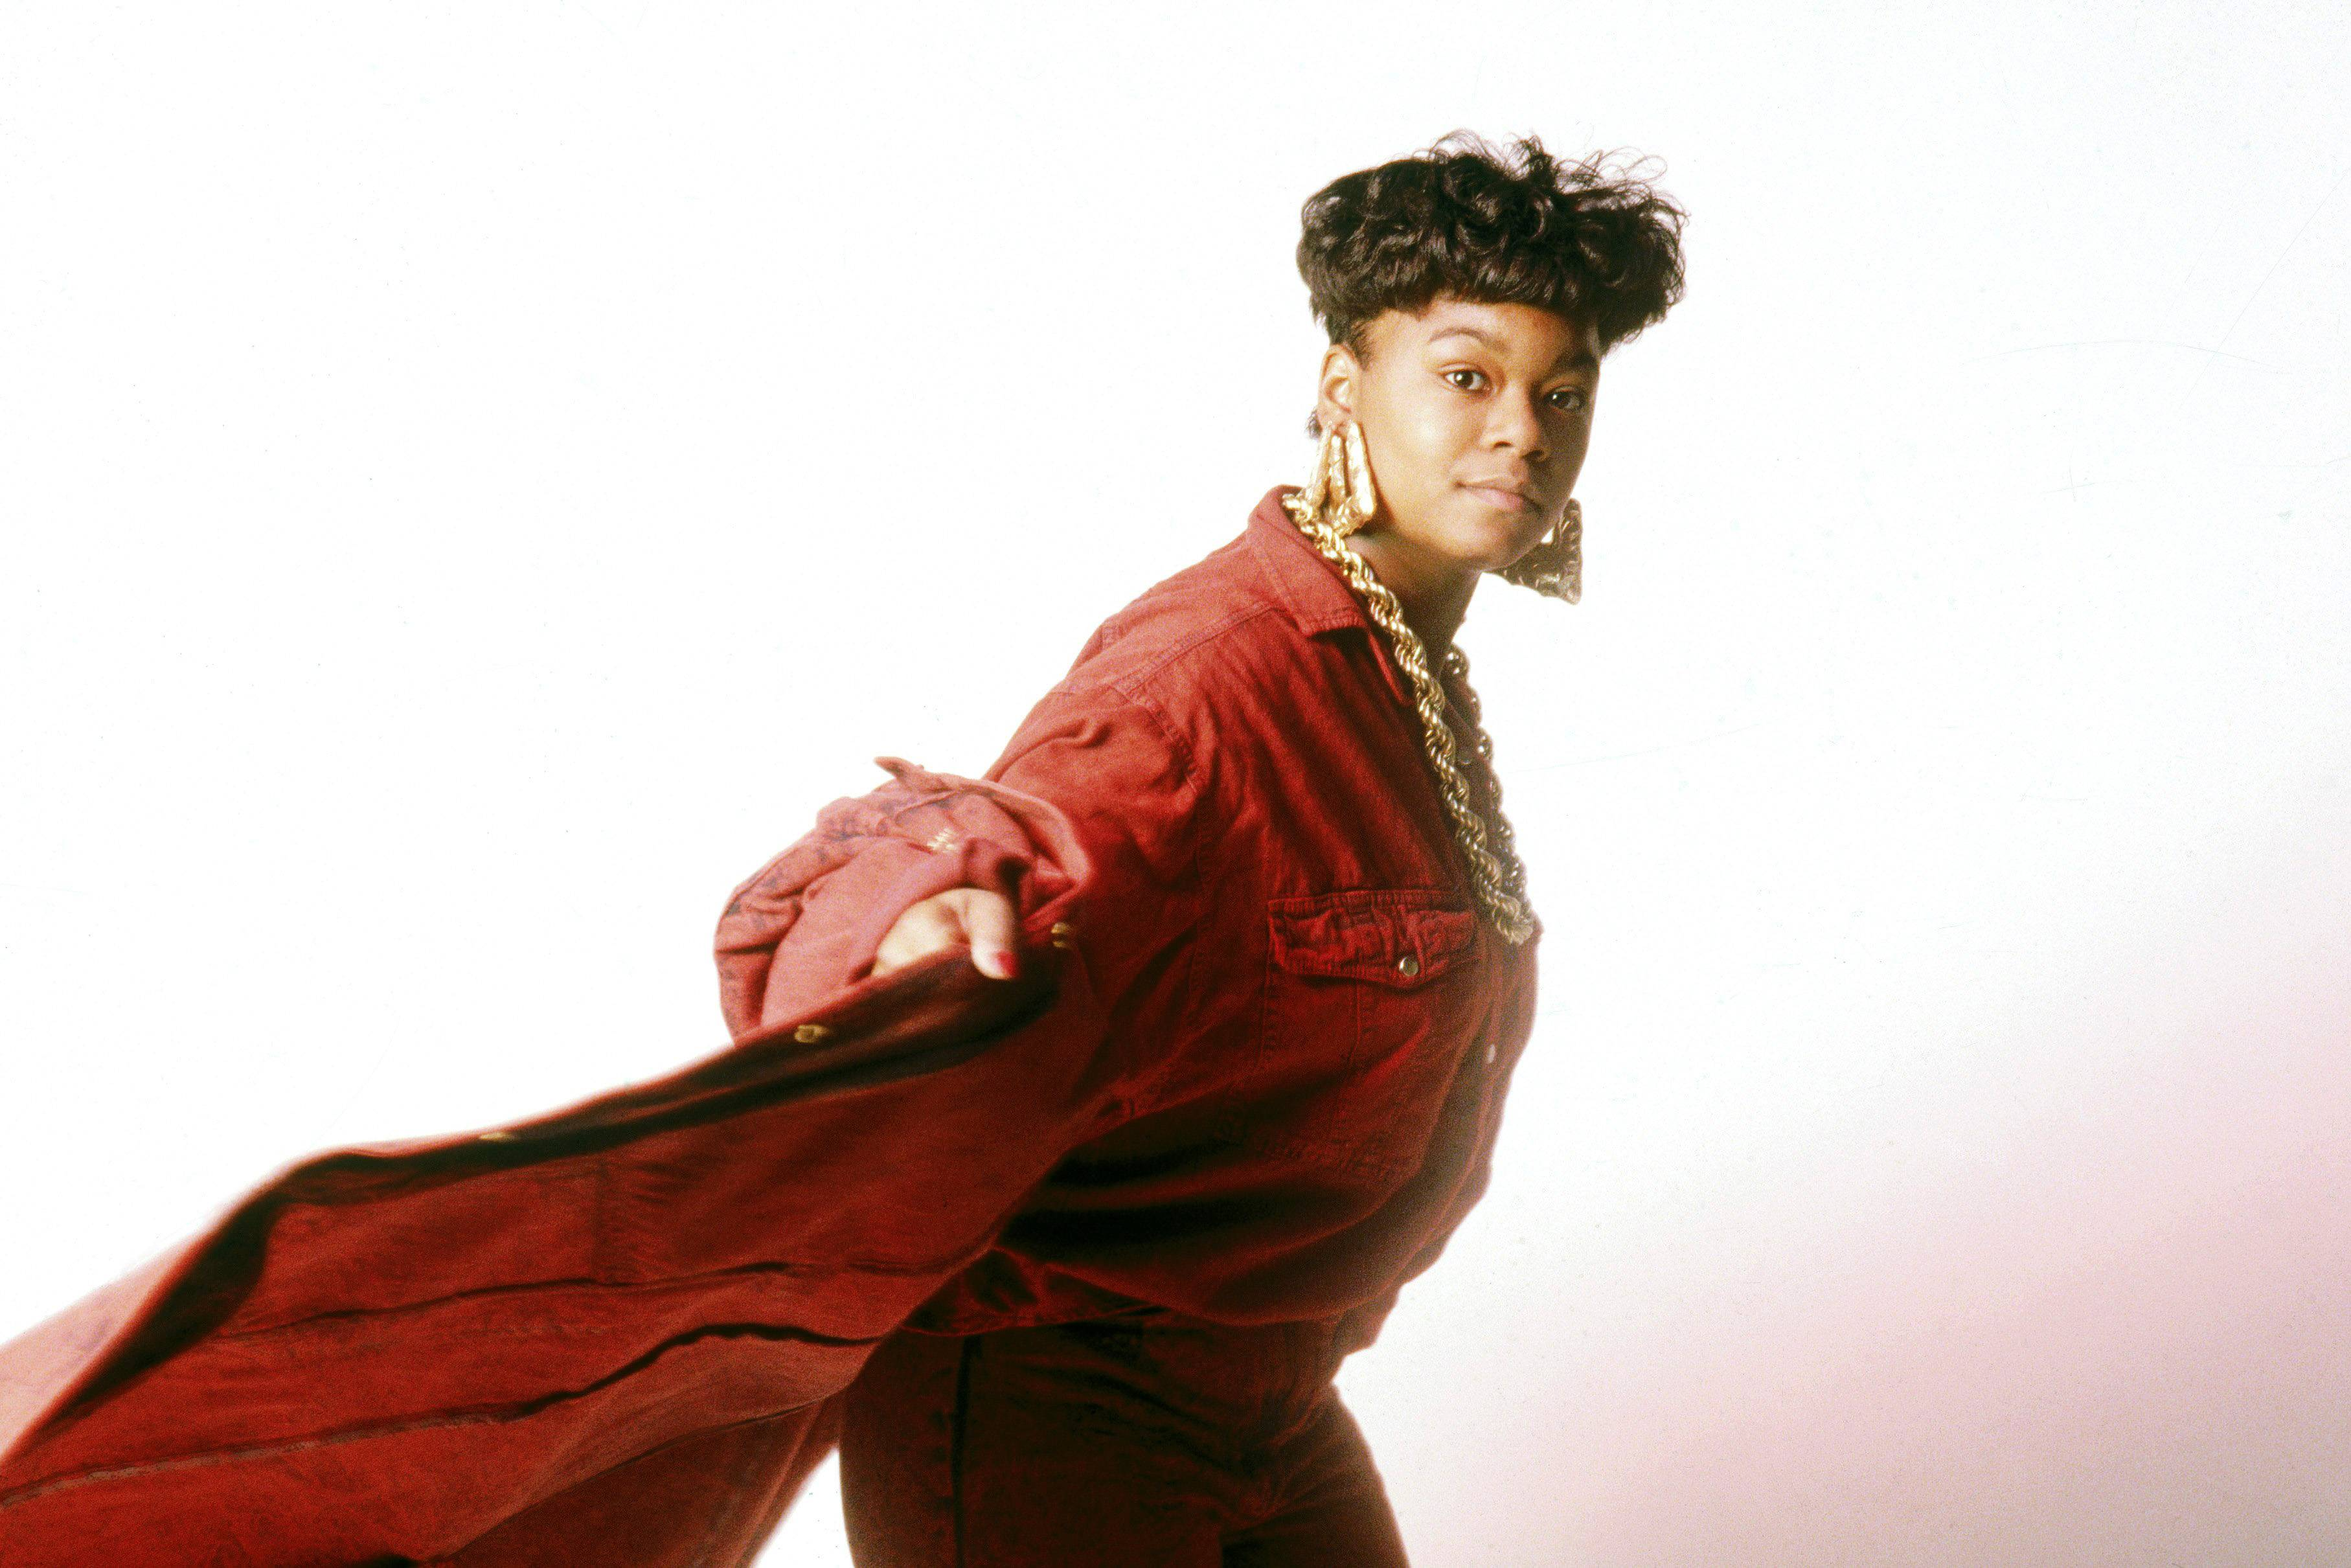 """Roxanne Shante - Ask any female MC who they were inspired by, and so many times you will get the answer, Roxanne Shante. At the tender age of 14, Roxanne Shante released """"Roxanne's Revenge,"""" a response record to UTFO's """"Roxanne, Roxanne."""" The Queensbridge MC was one of the first commercially successful females in hip hop.  (Photo by Michael Ochs Archives/Getty Images)"""